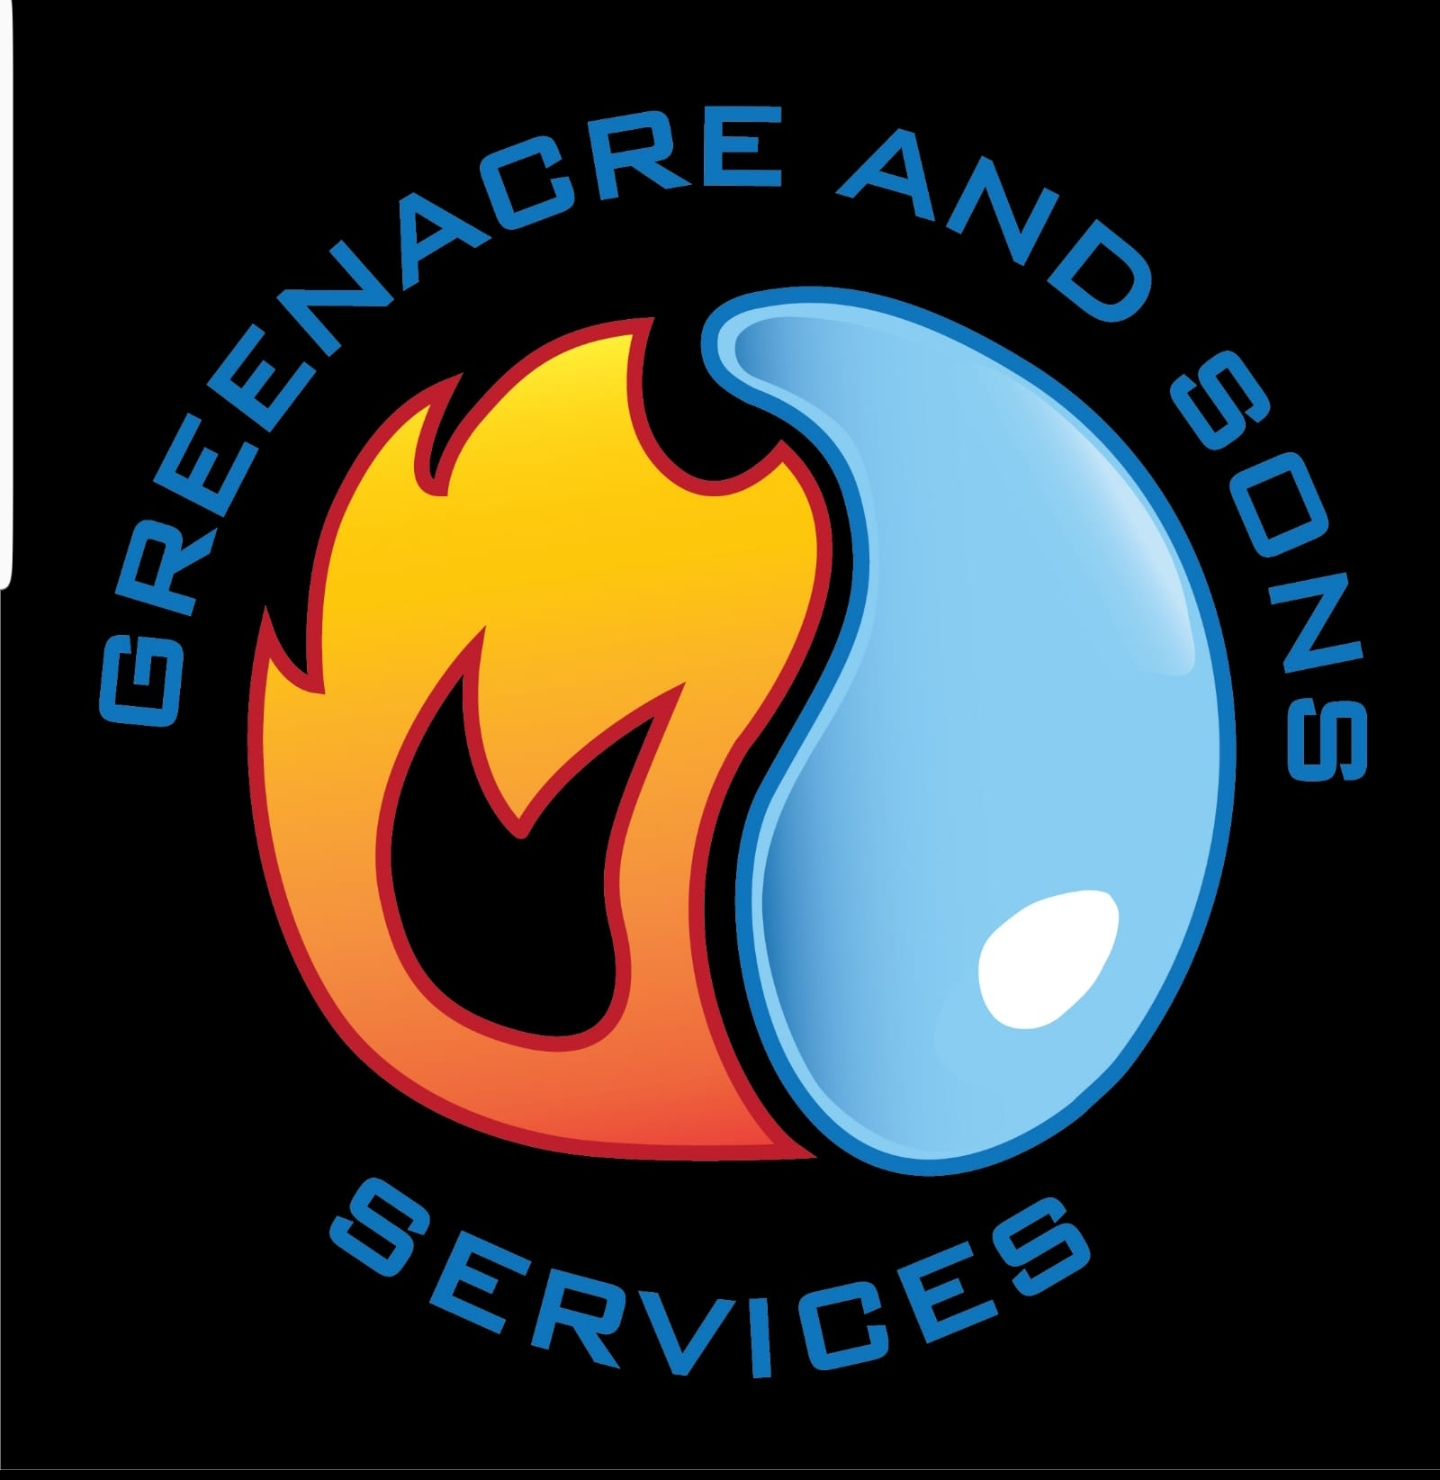 GSS - Greenacre & Sons Services